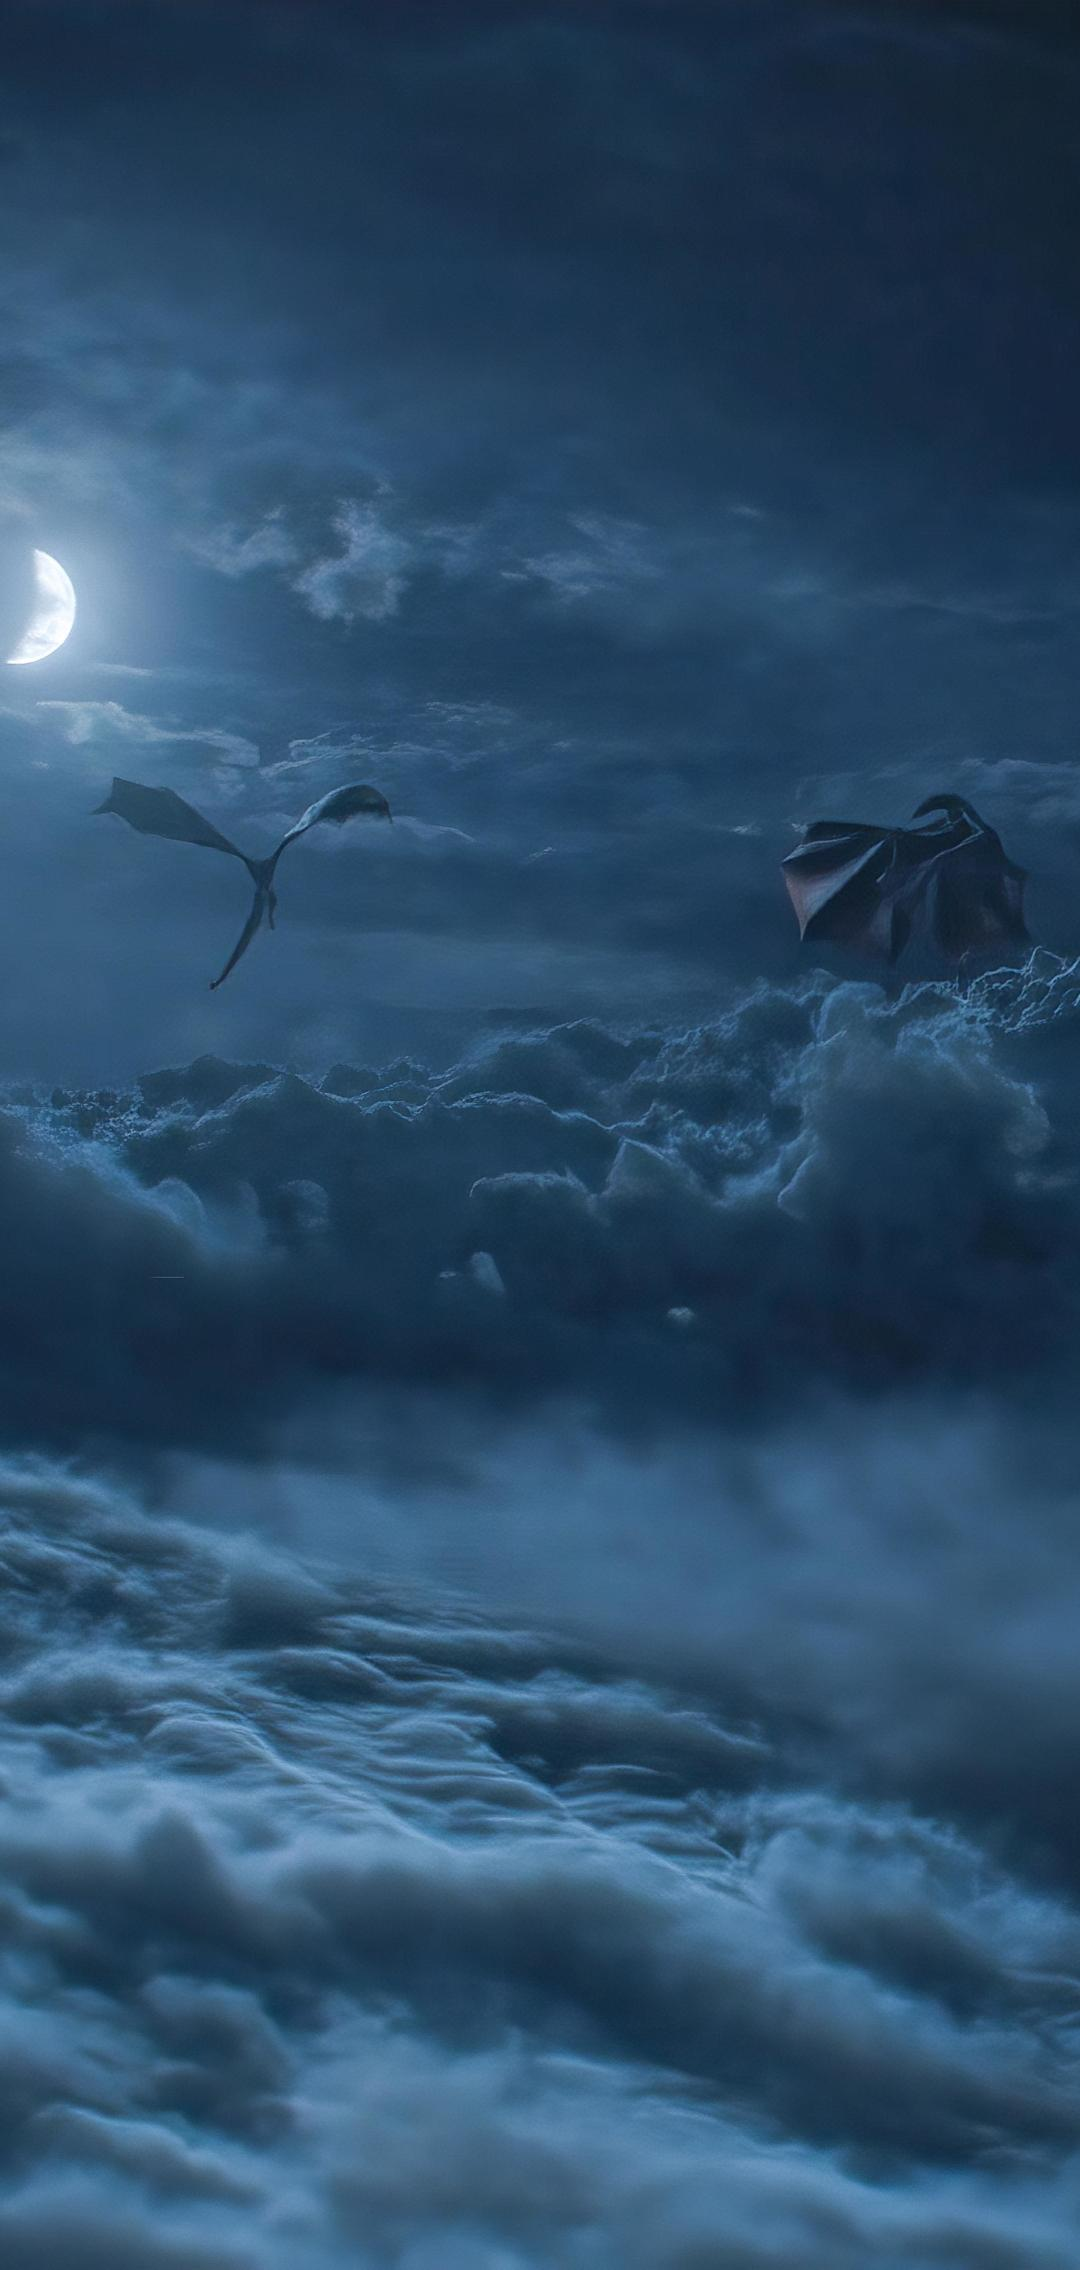 1080x2270 Dragons Above Cloud Game Of Throne Season 8 1080x2270